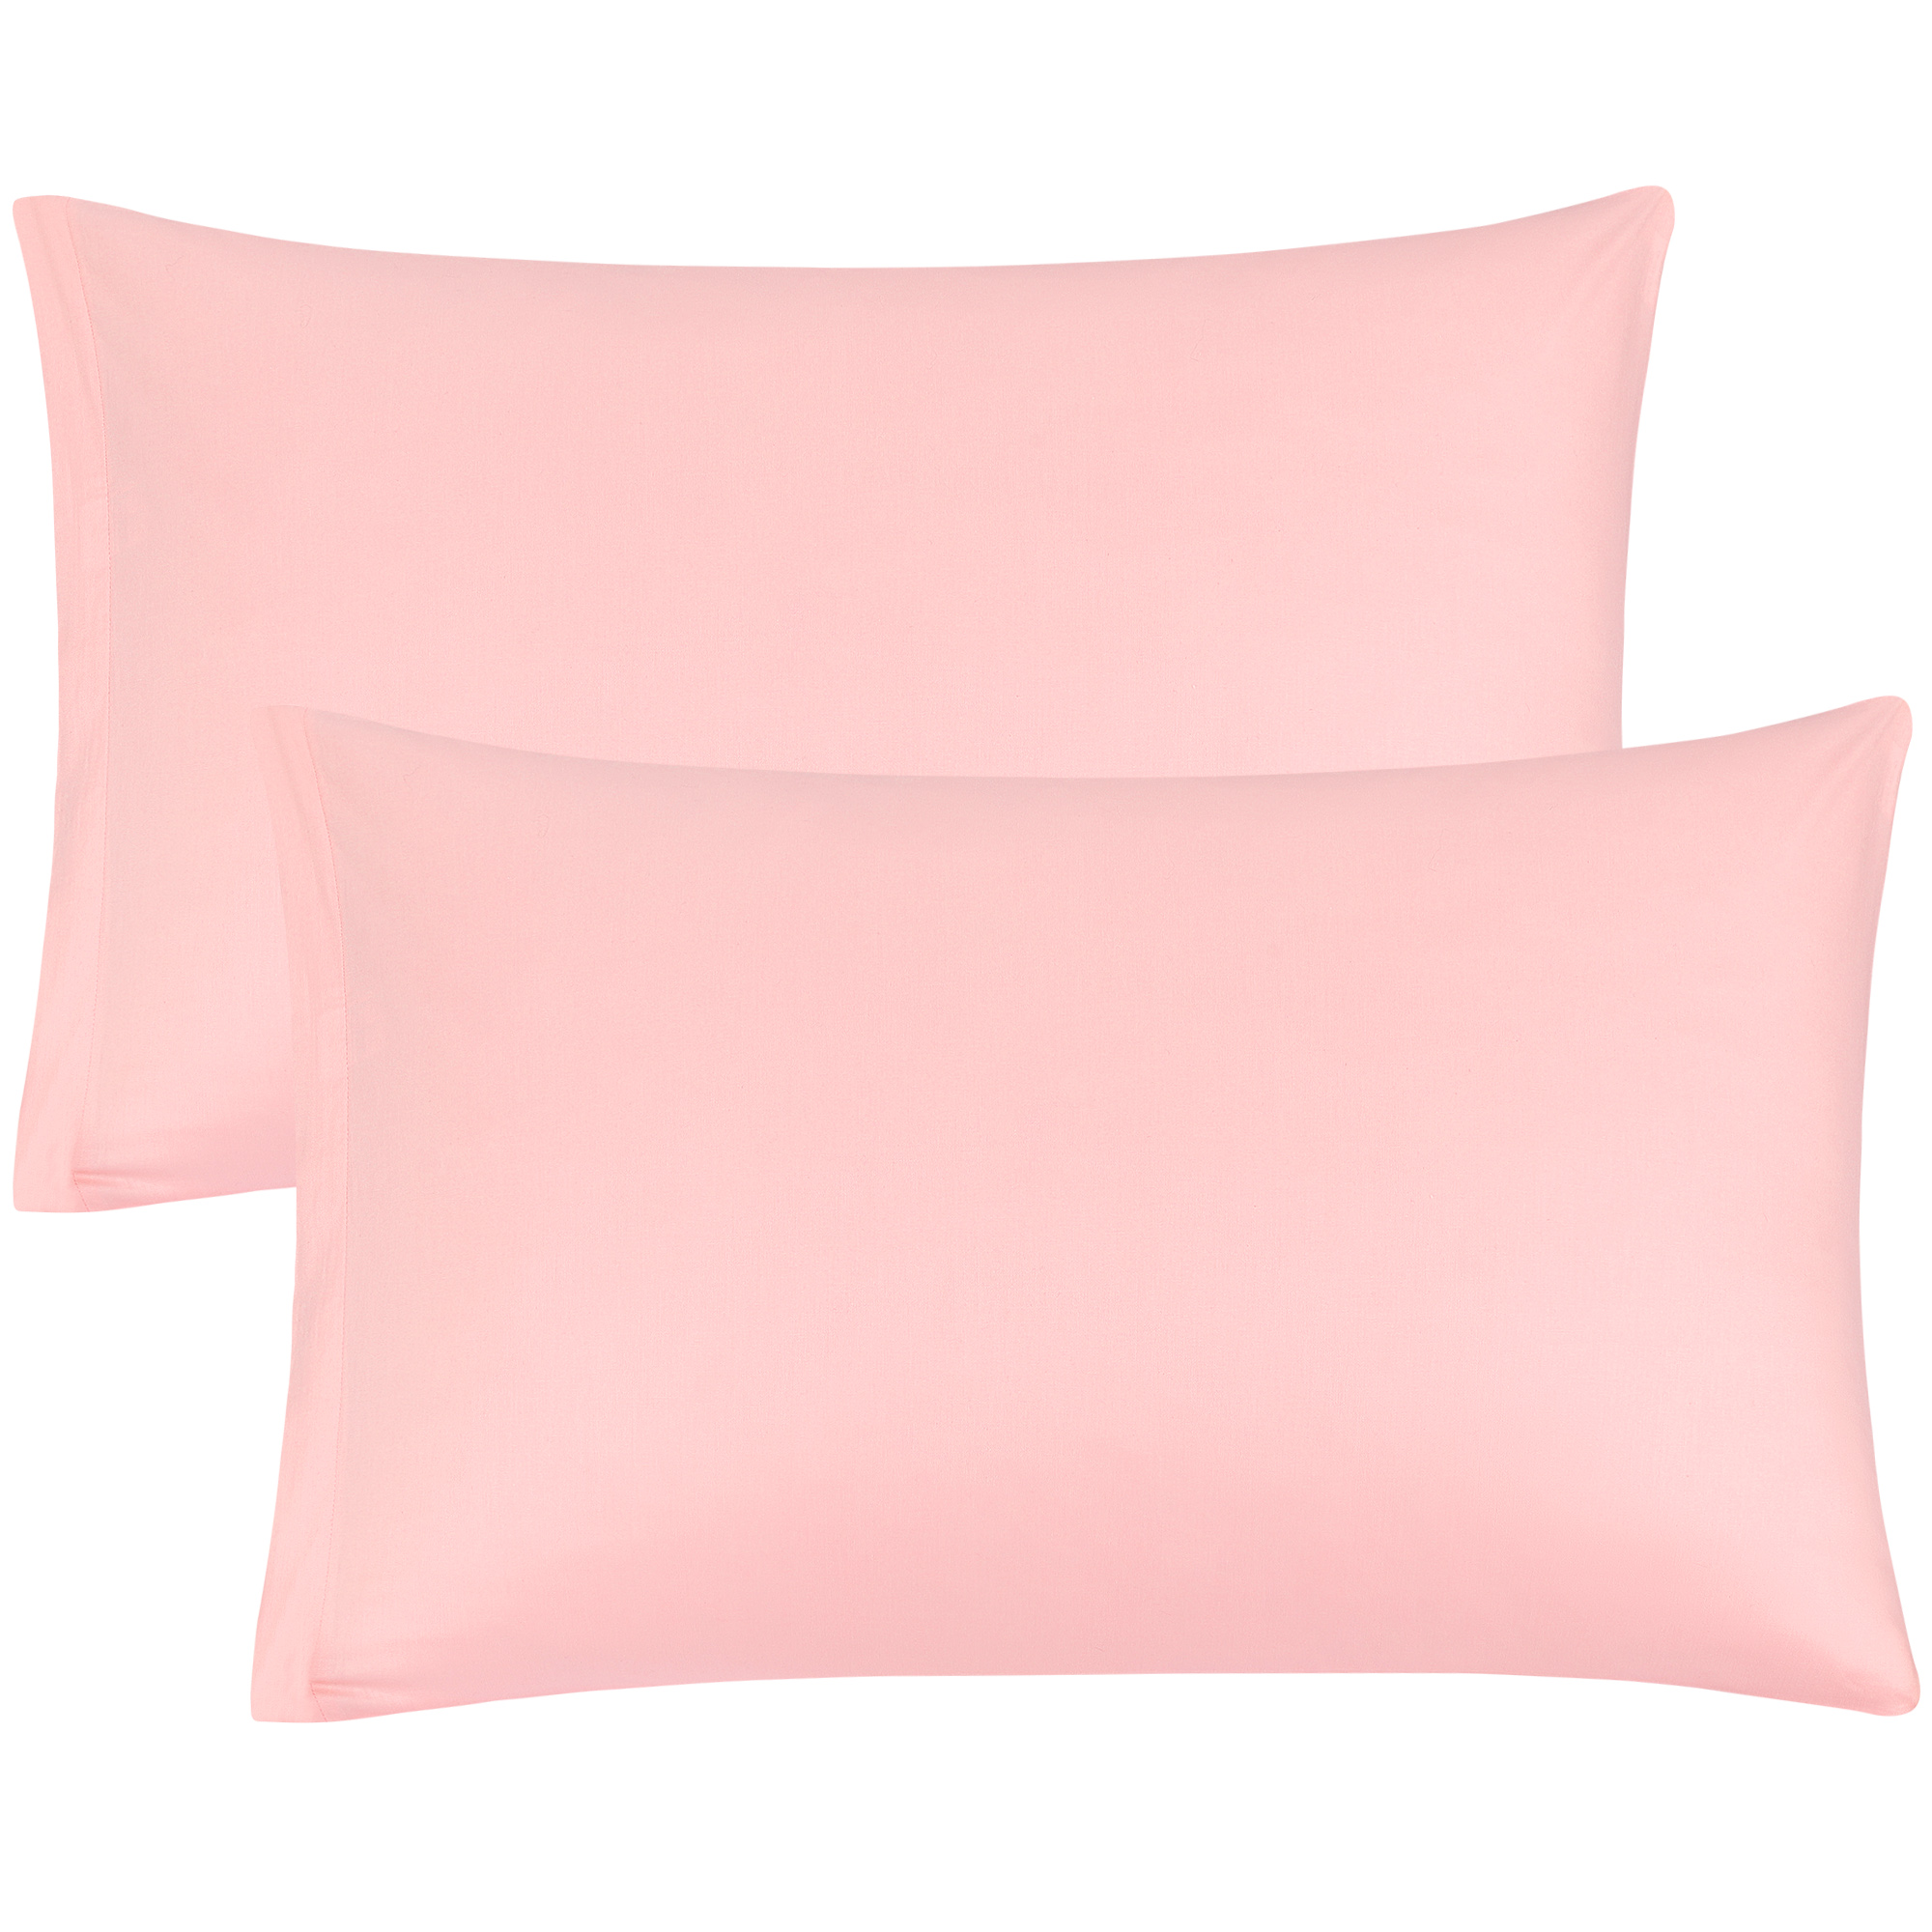 Zippered Pillowcases Covers Egyptian Cotton 2-Pack (20 x 26 Inch, Light Pink)